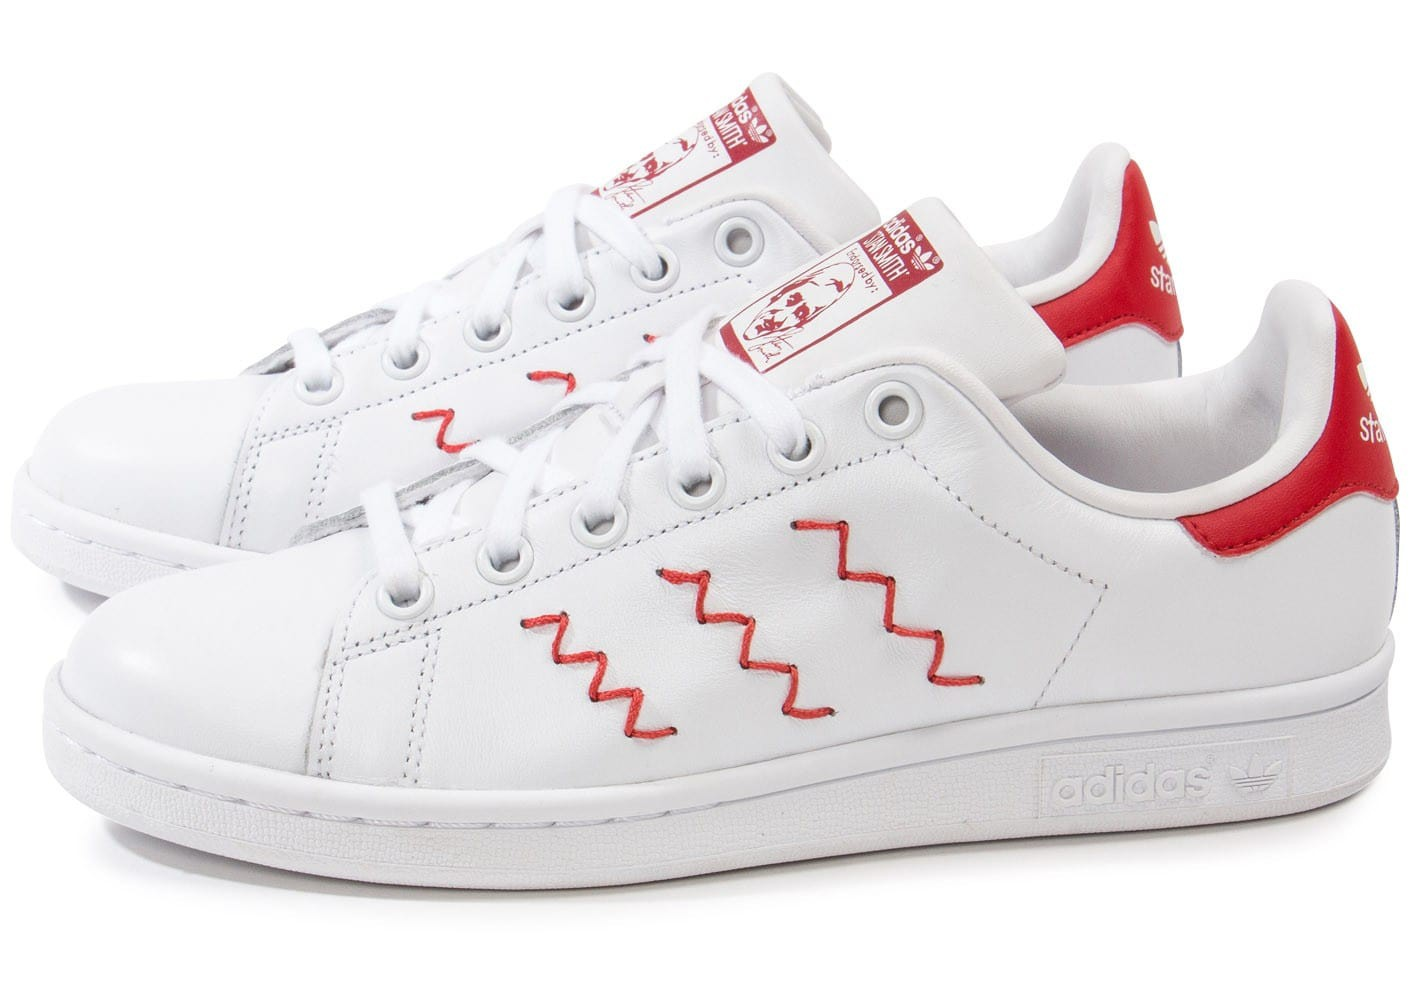 Get 1d0a8 C0d70 Adidas Stan Smith Rouge Zag Zig mnw0v8N